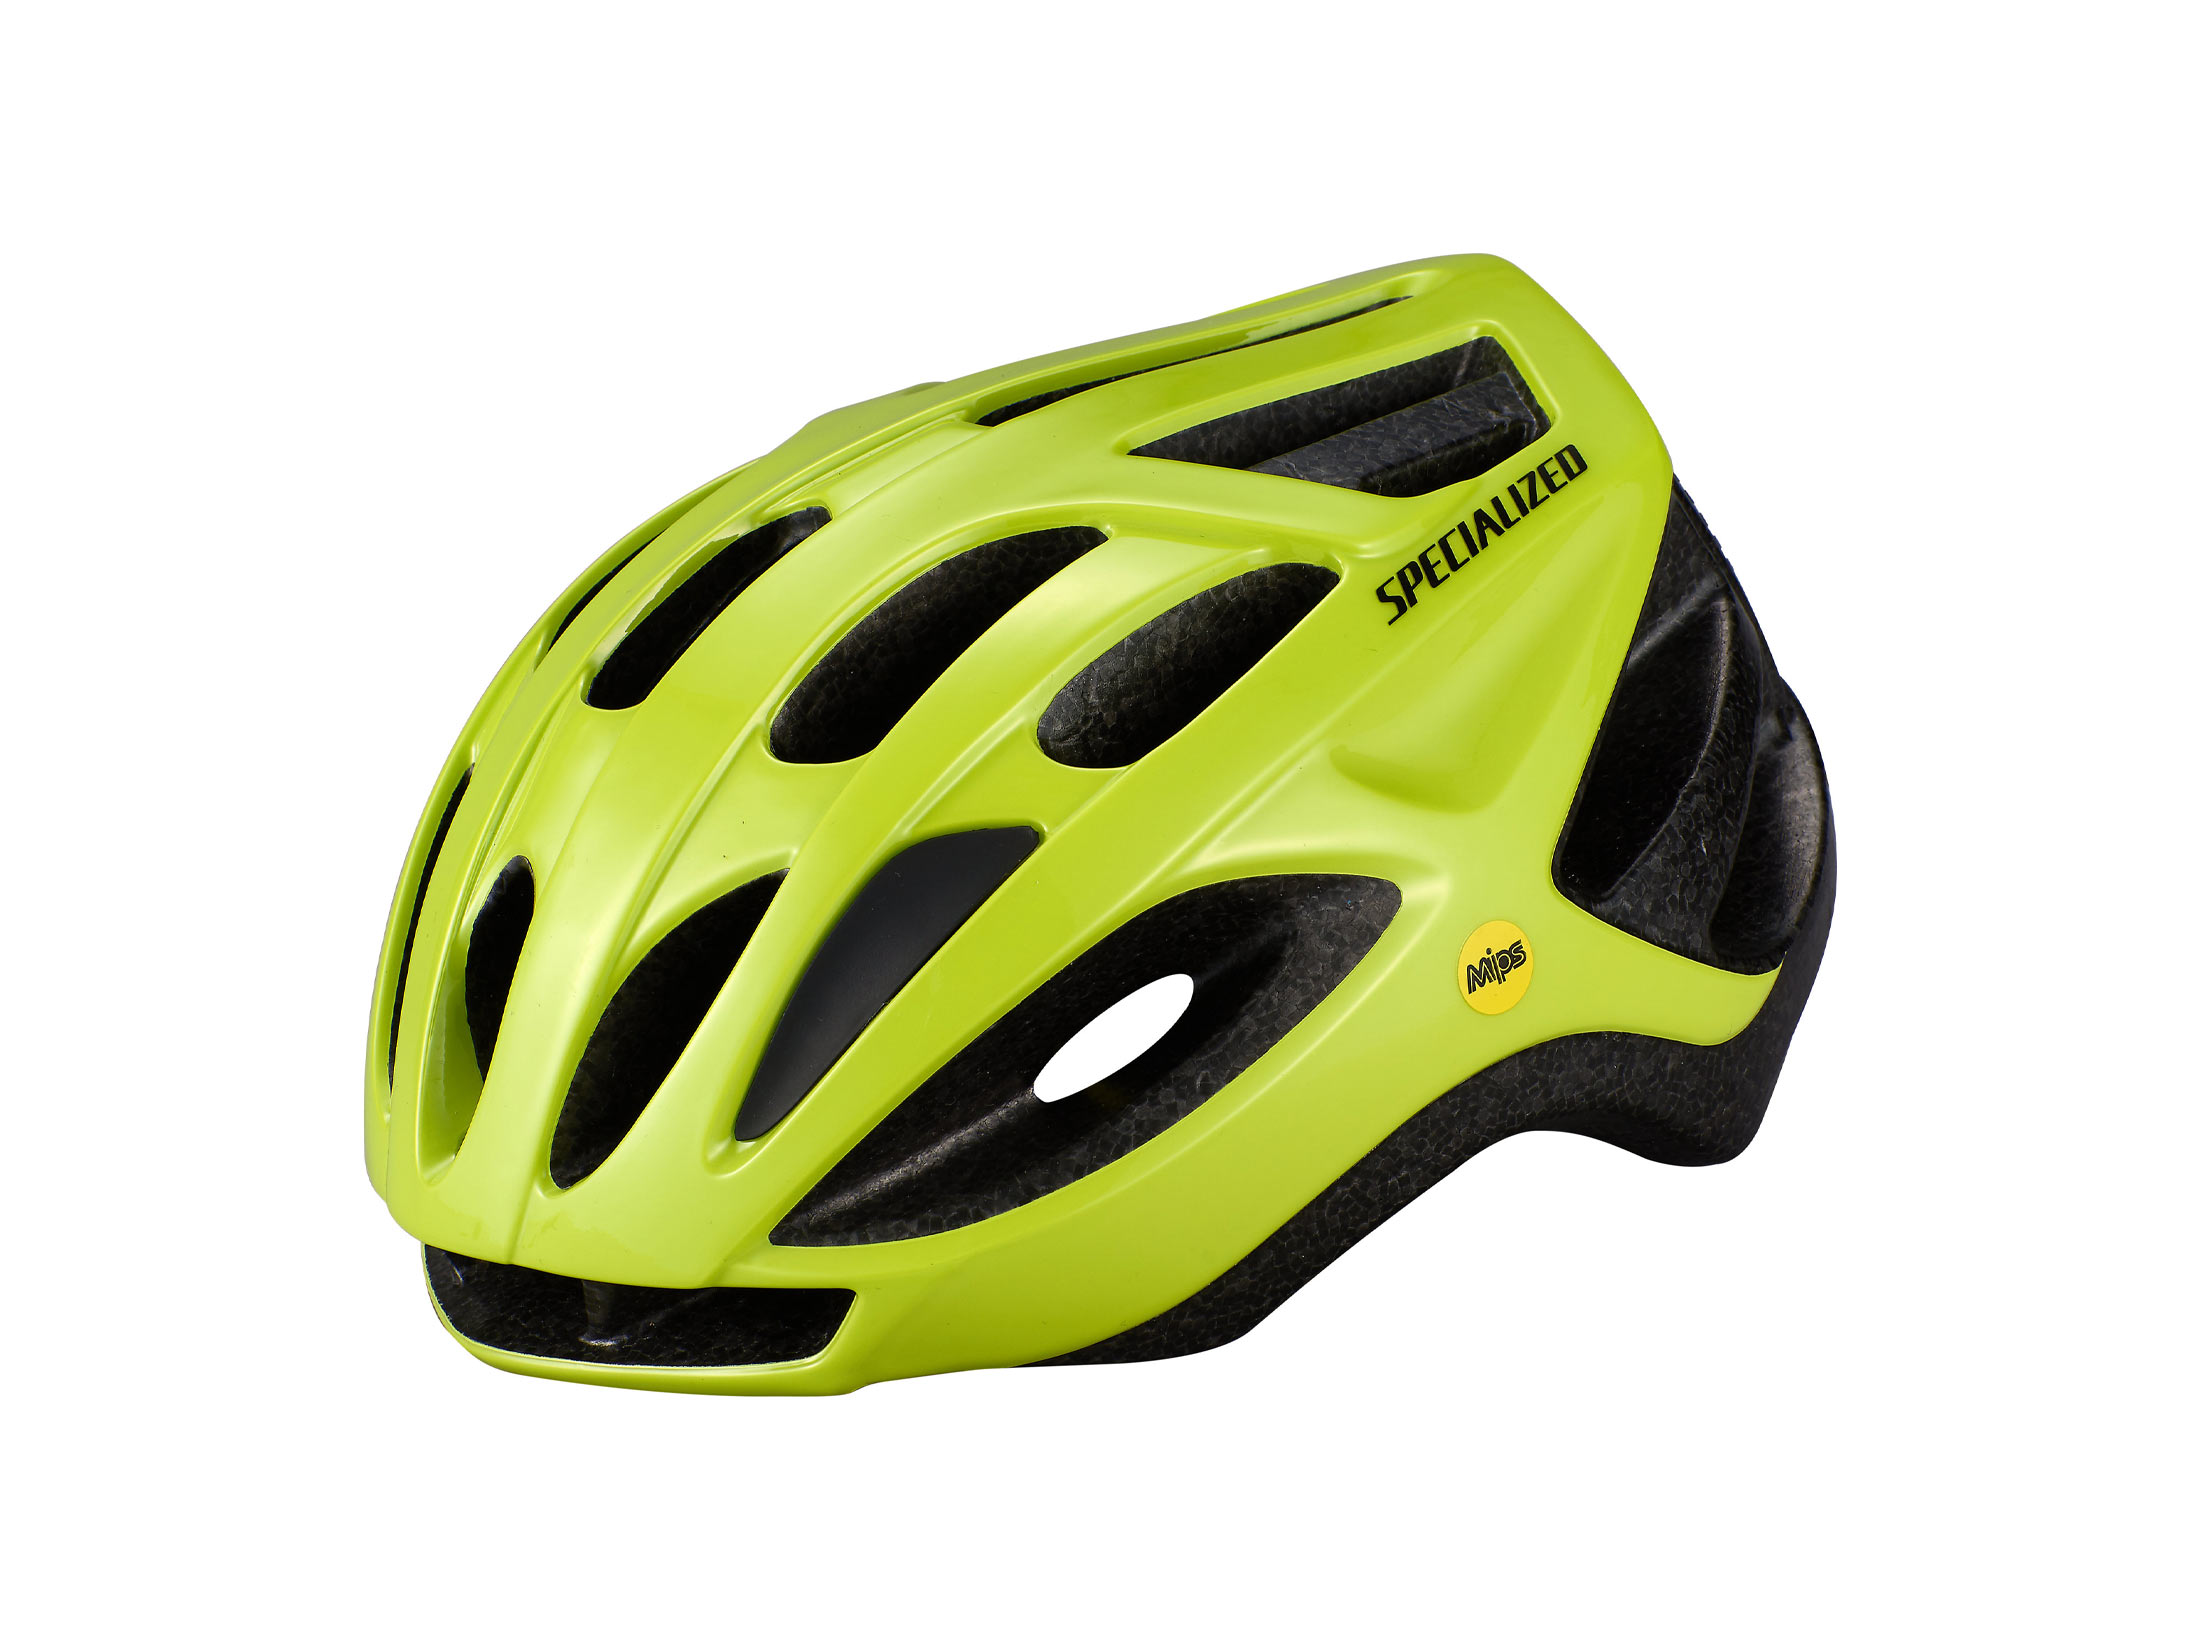 Specialized Align Helmet with Mips - Hyper Green